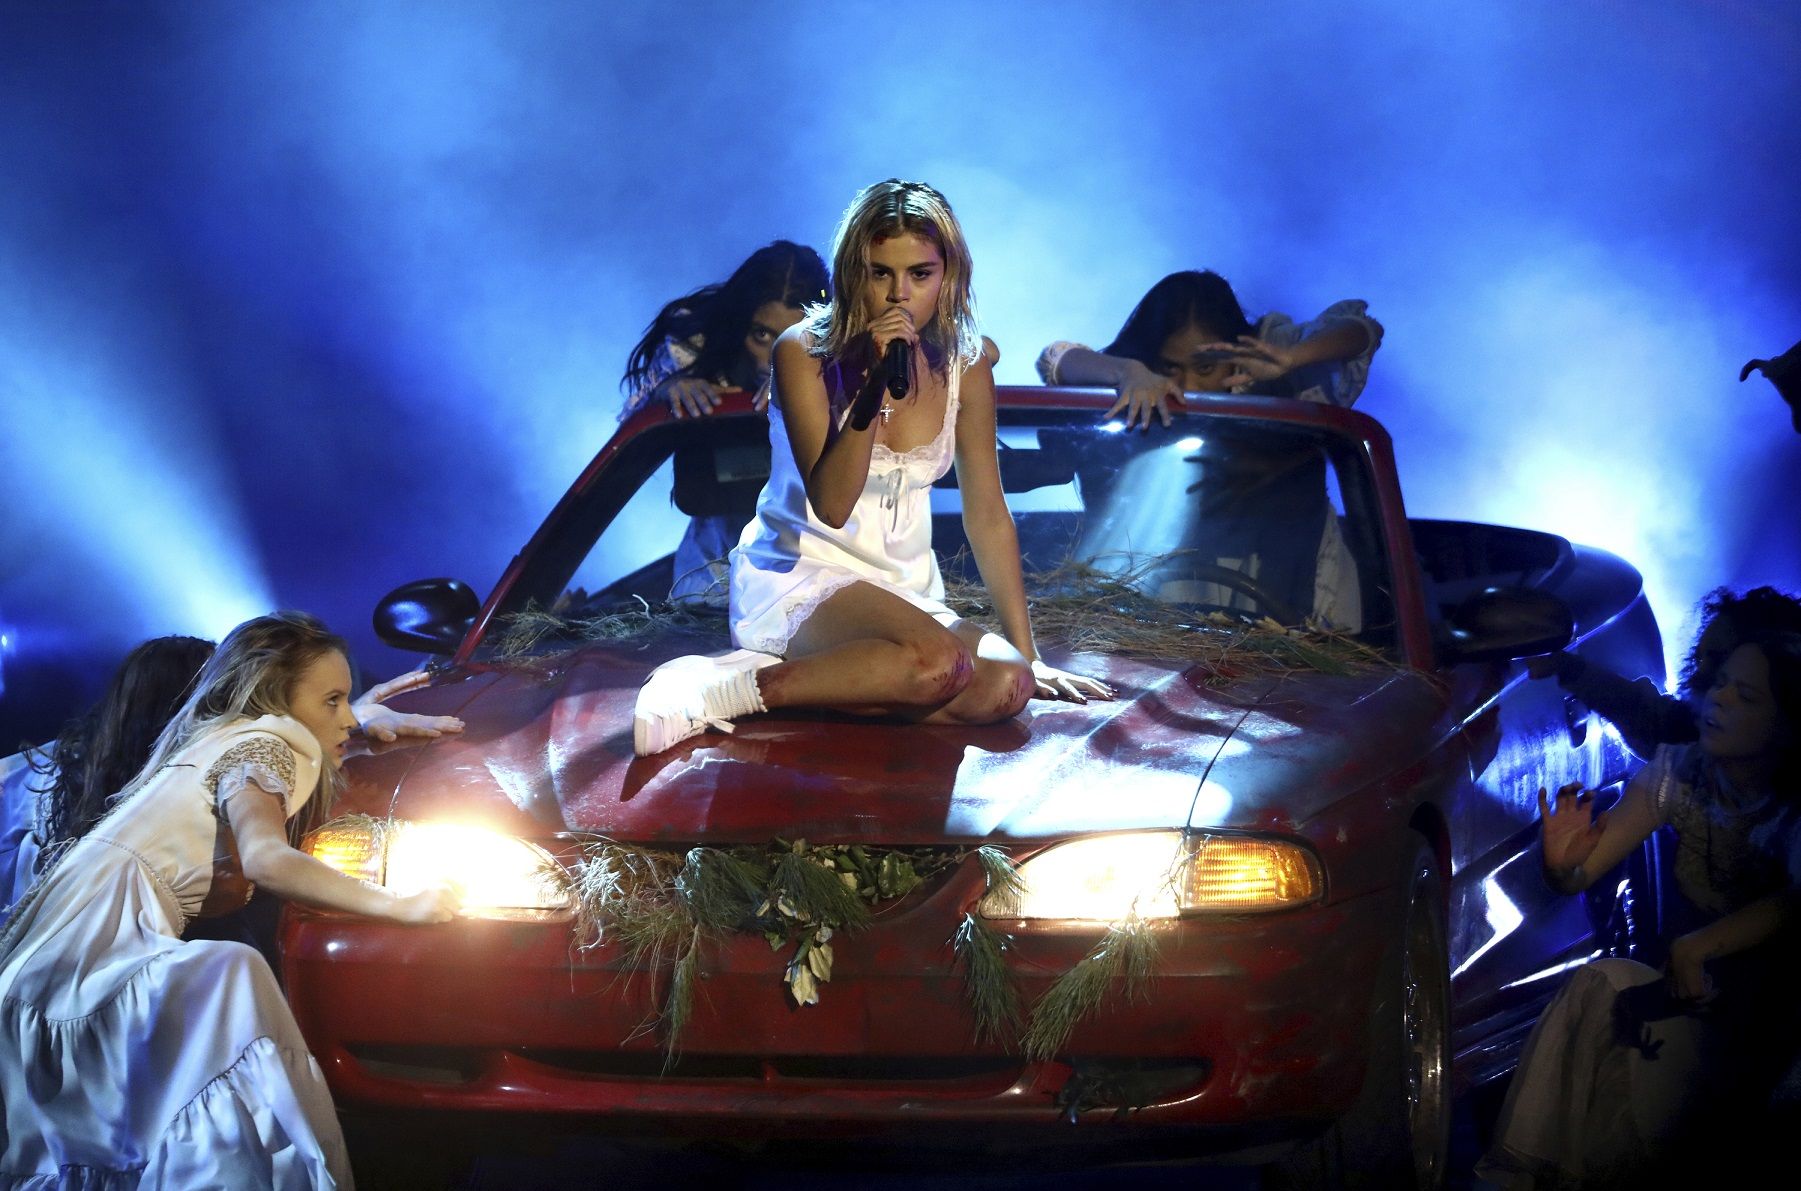 Selena Gomez performs Wolves at the awards (Matt Sayles/Invision/AP)